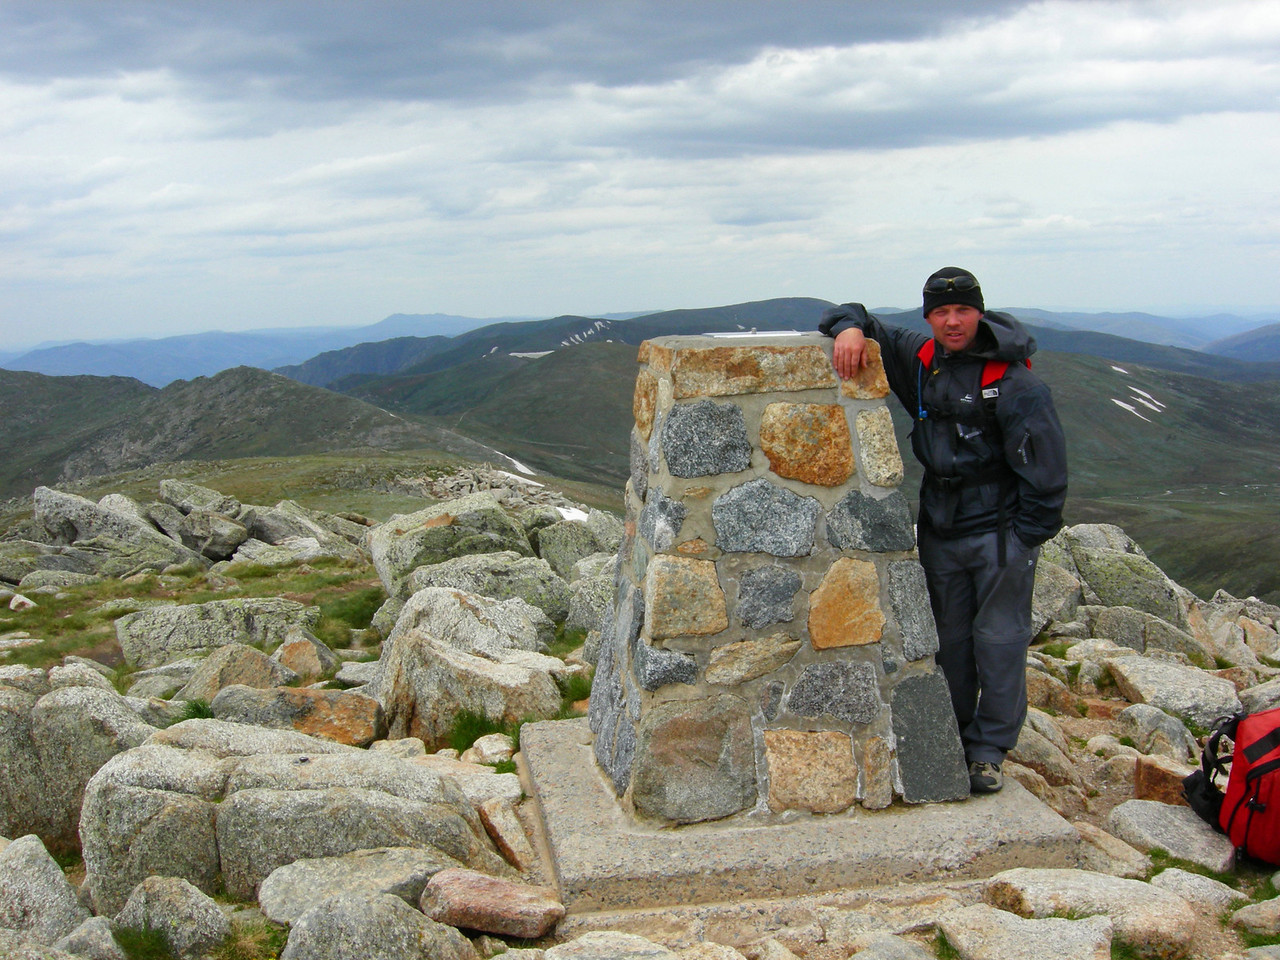 Highest point in Australia, Kosciuszko NP